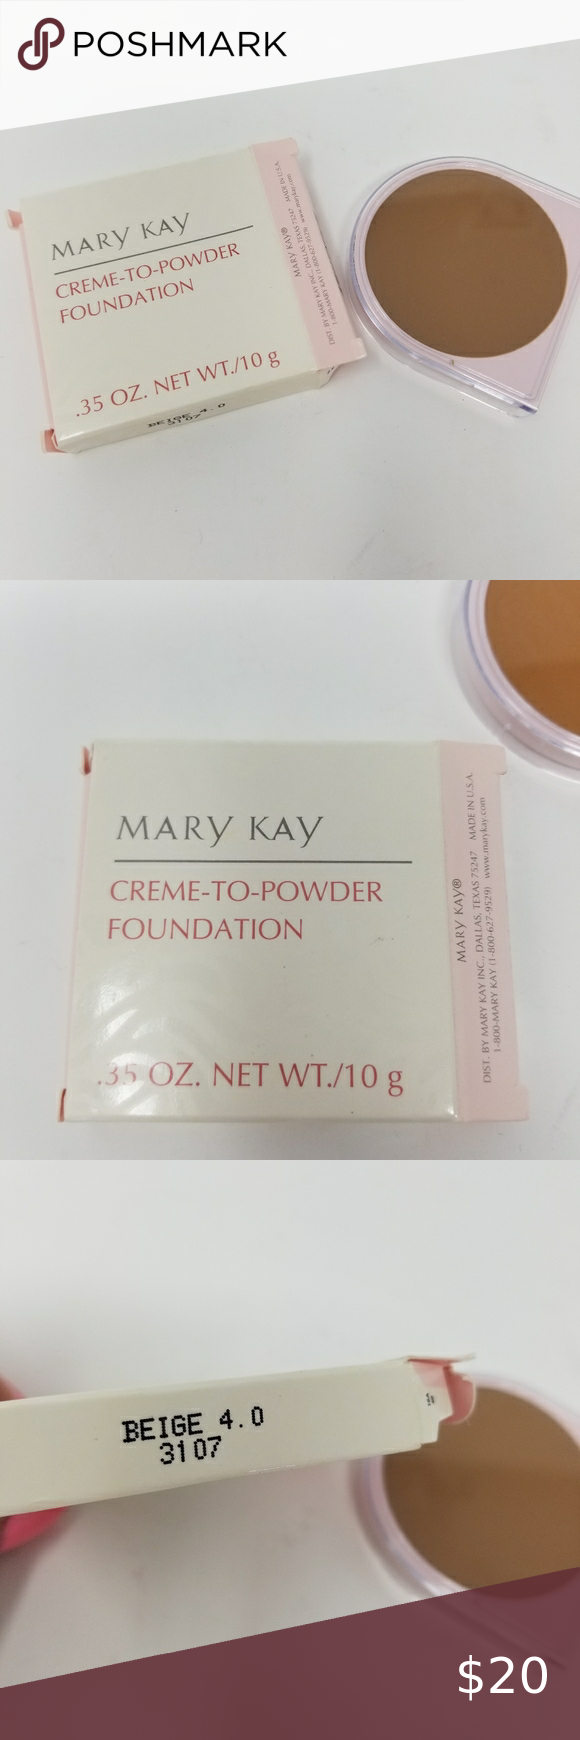 Mary Kay New Cremeto Powder Foundation Beige 4.0 NWT en